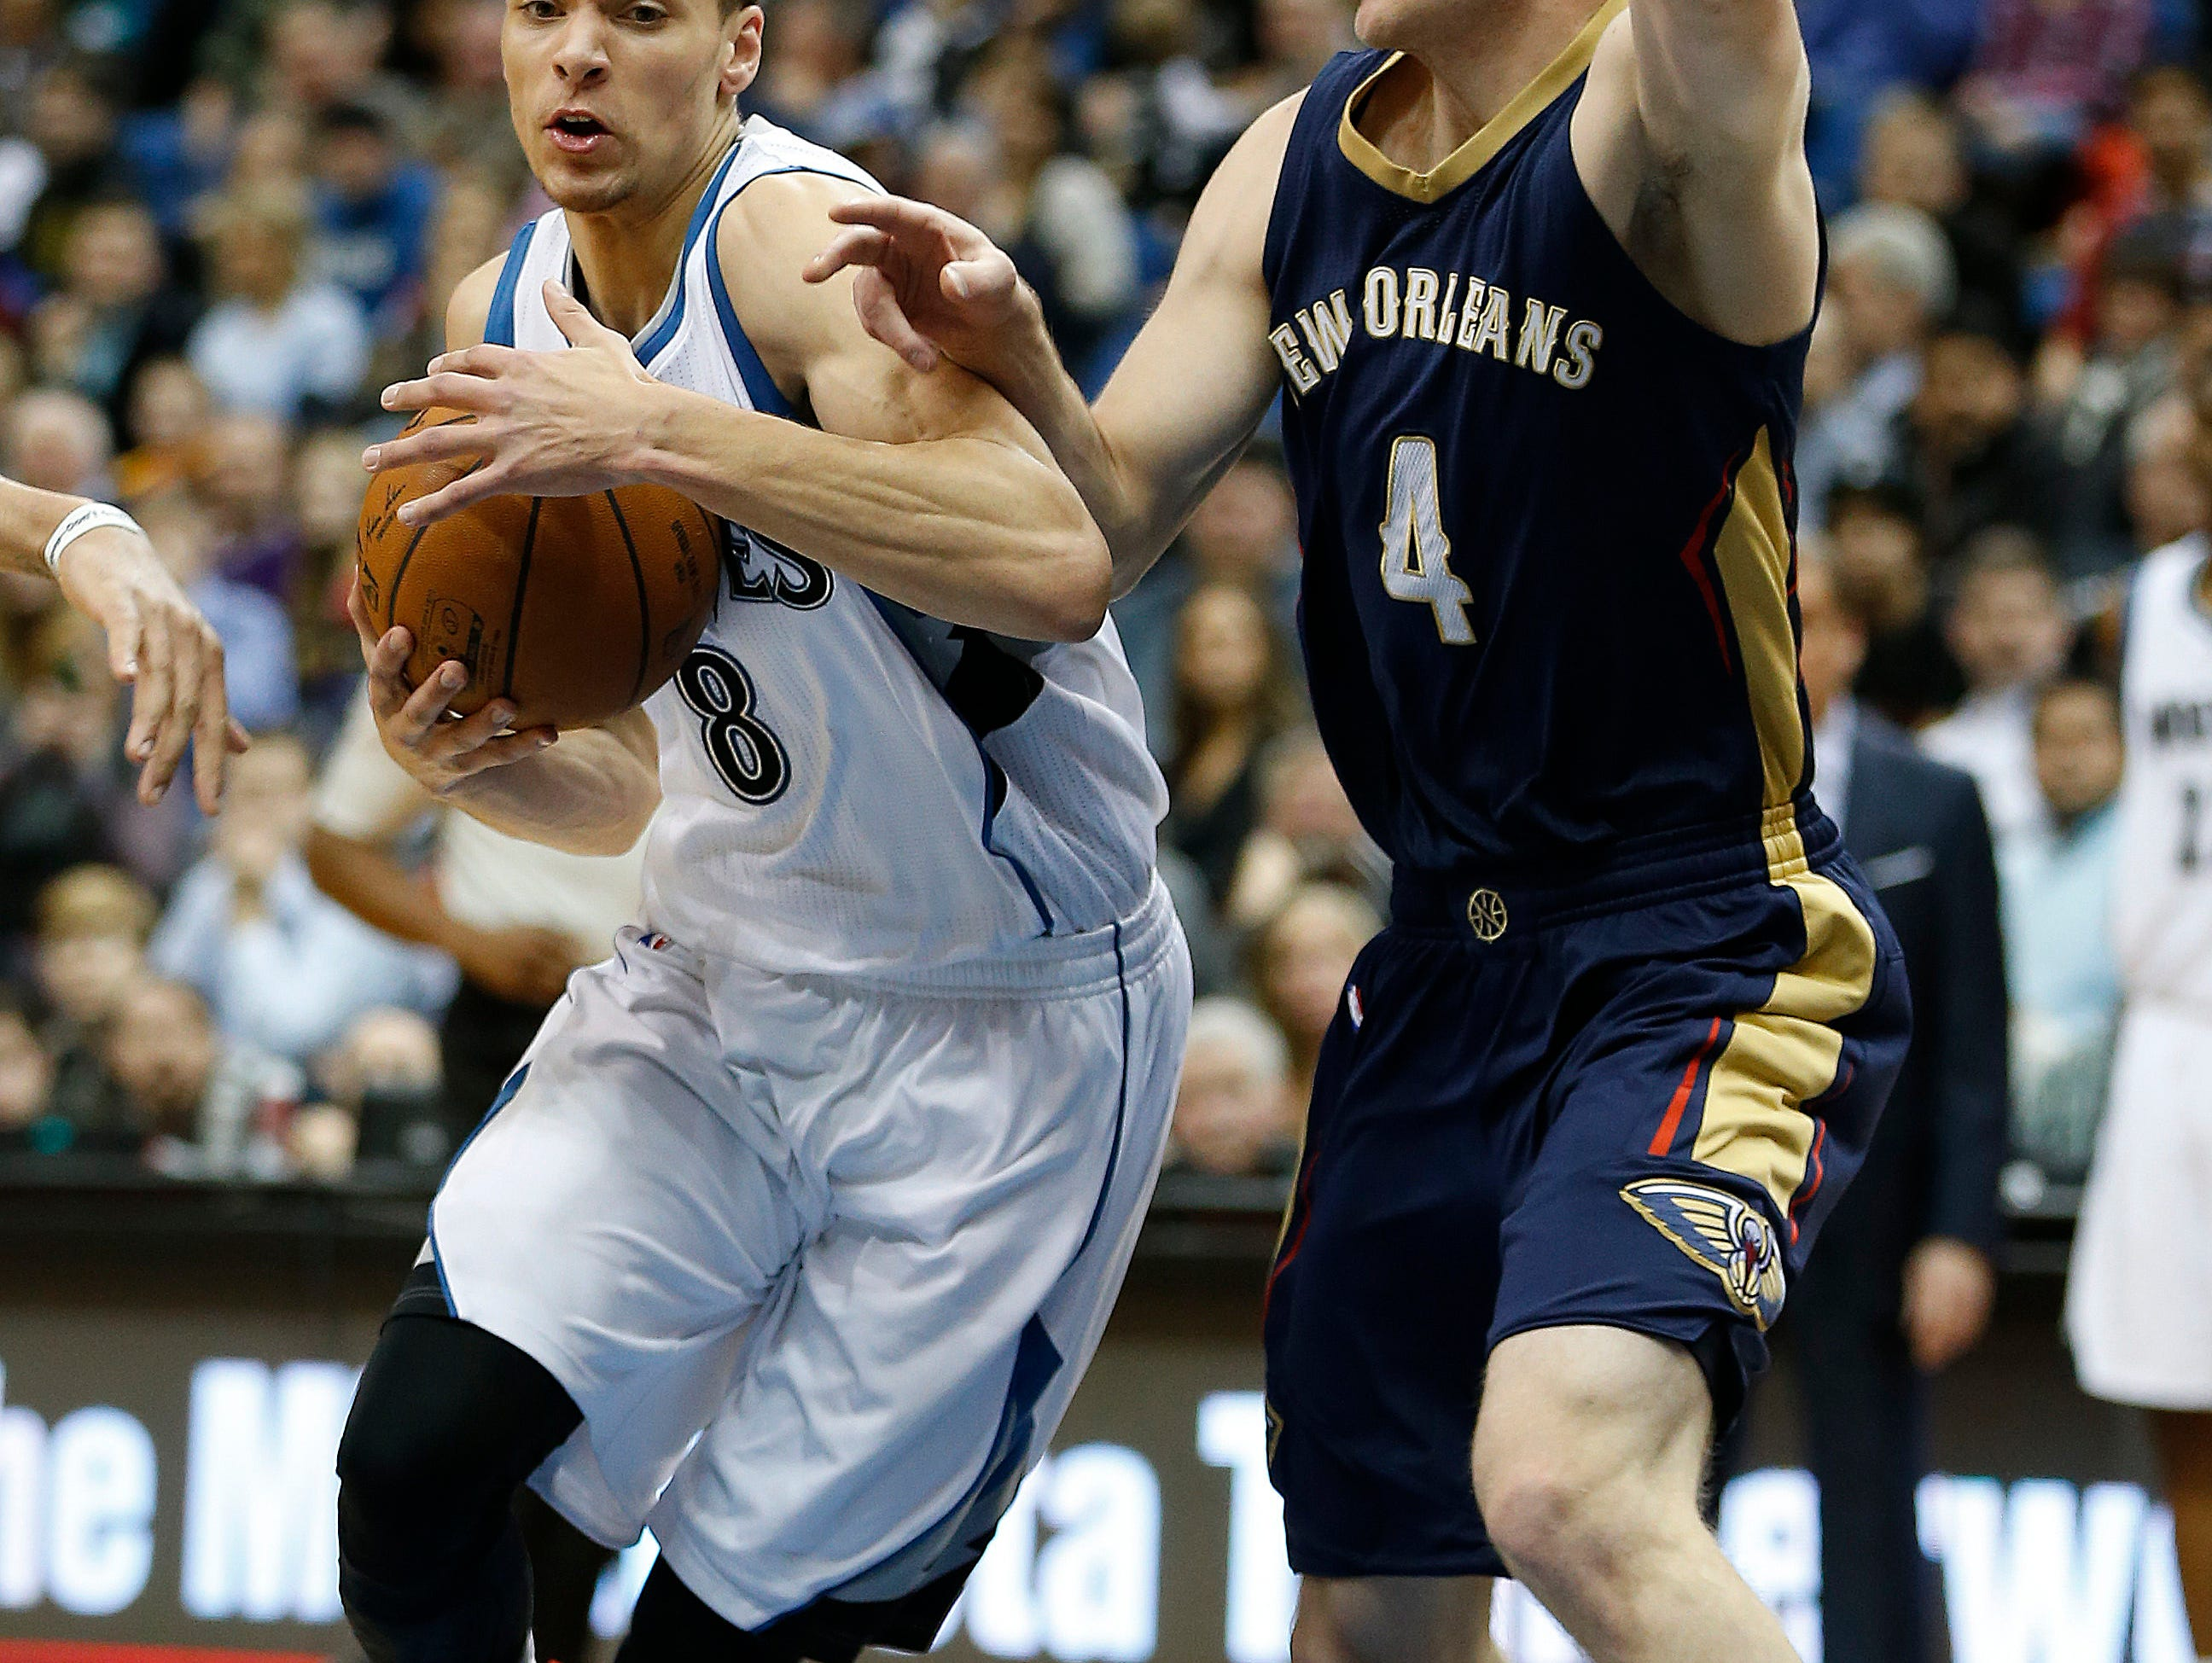 Minnesota Timberwolves guard Zach LaVine (8) moves past New Orleans Pelican guard Nate Wolters (4) during the second half of an NBA basketball game, Friday, Jan. 23, 2015, in Minneapolis. The Pelicans won 92-84. (AP Photo/Stacy Bengs)